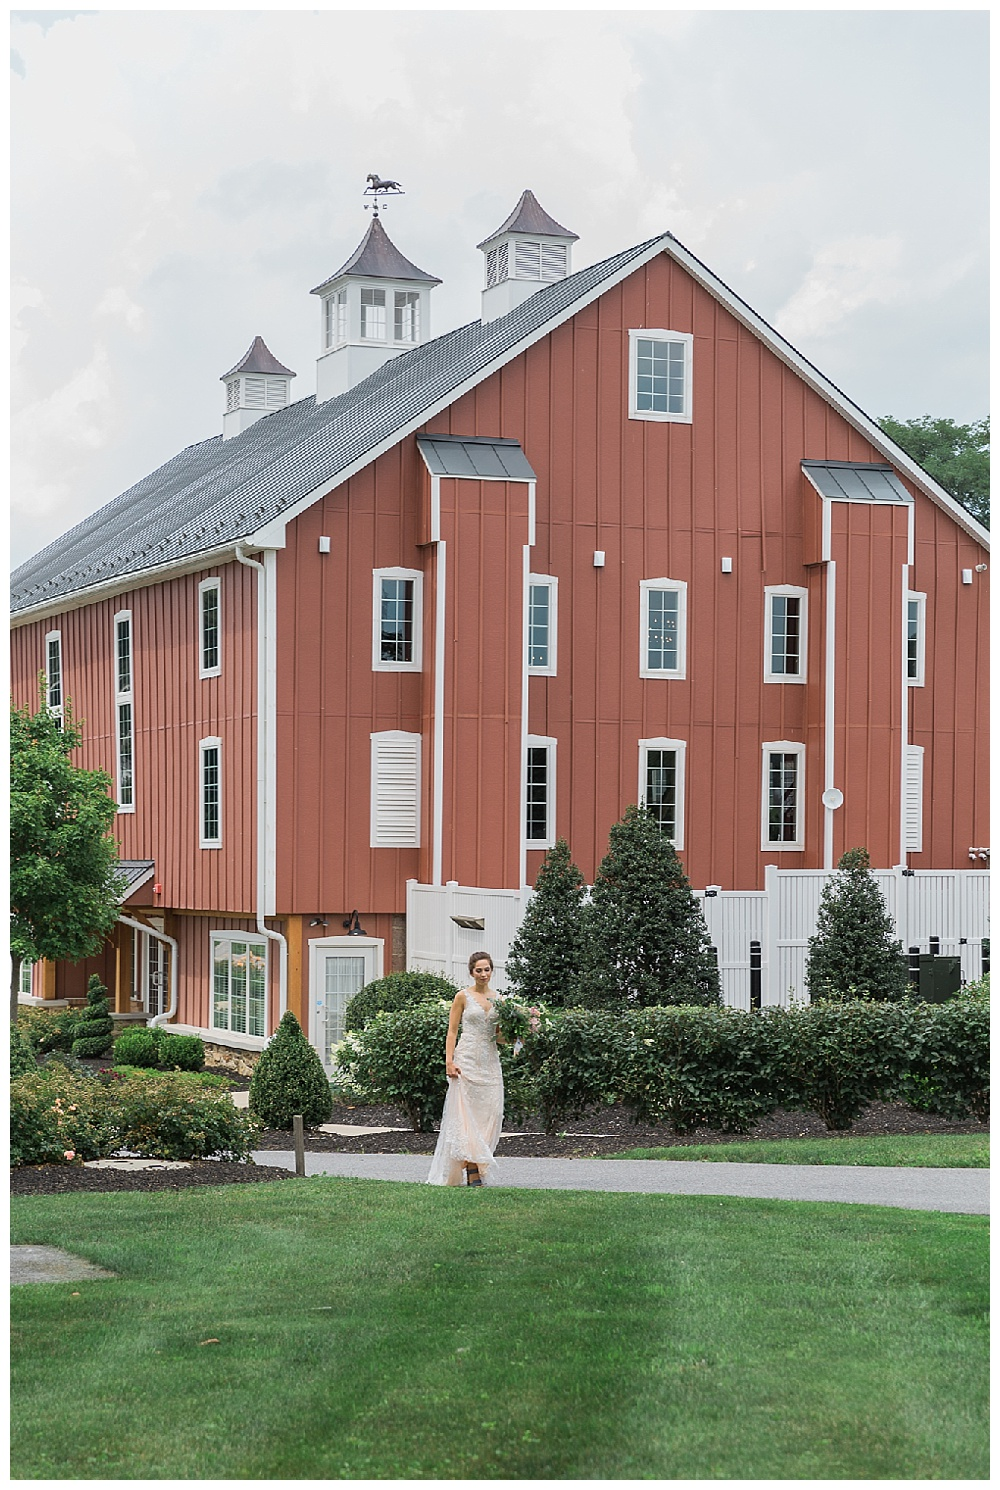 Pennsylvania Weddings | Wyndridge Farm Weddings | York, PA | www.redoakweddings.com